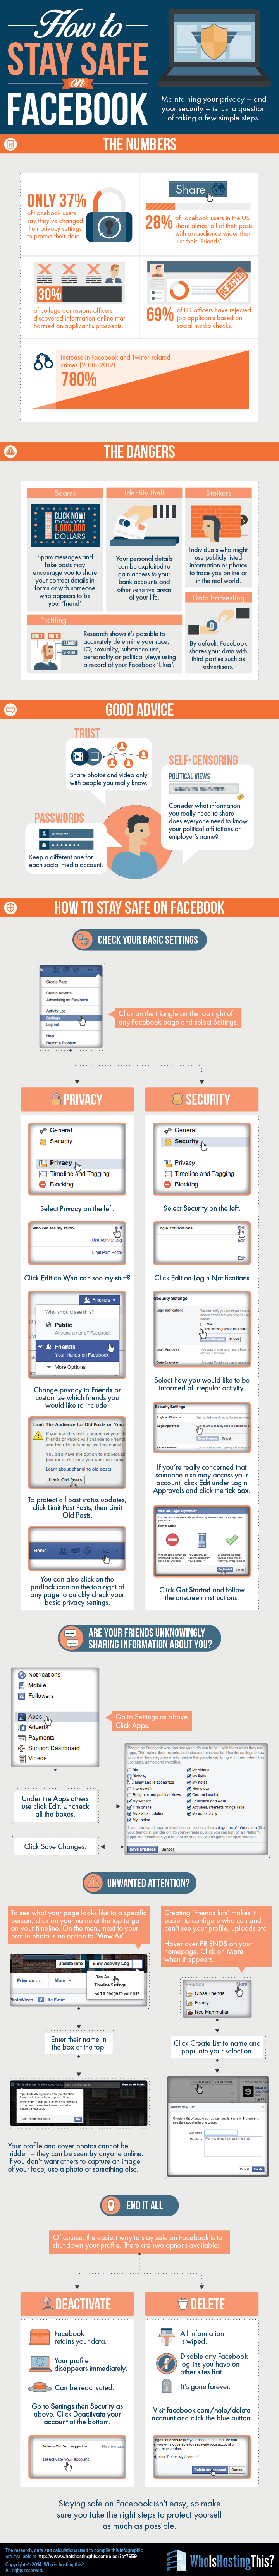 Tipps zur #Sicherheit auf #Facebook - #Infografik Infographic: How to stay safe on Facebook